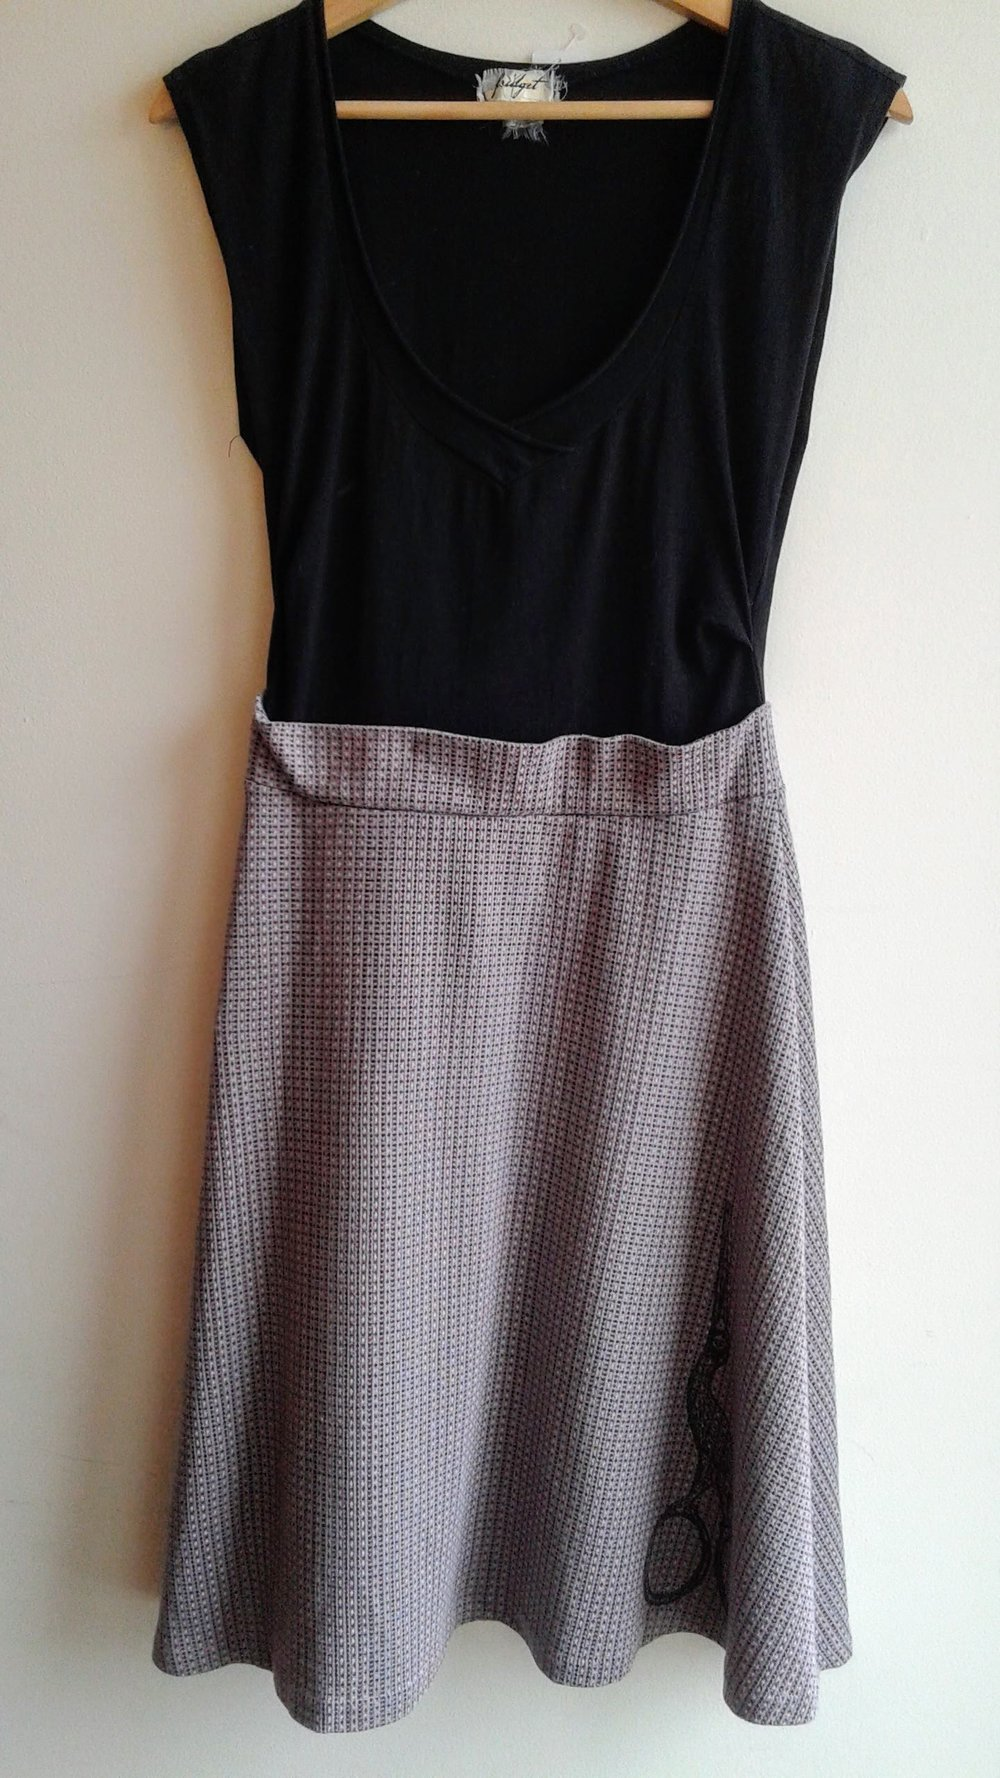 Fridgit dress; Size S, $42